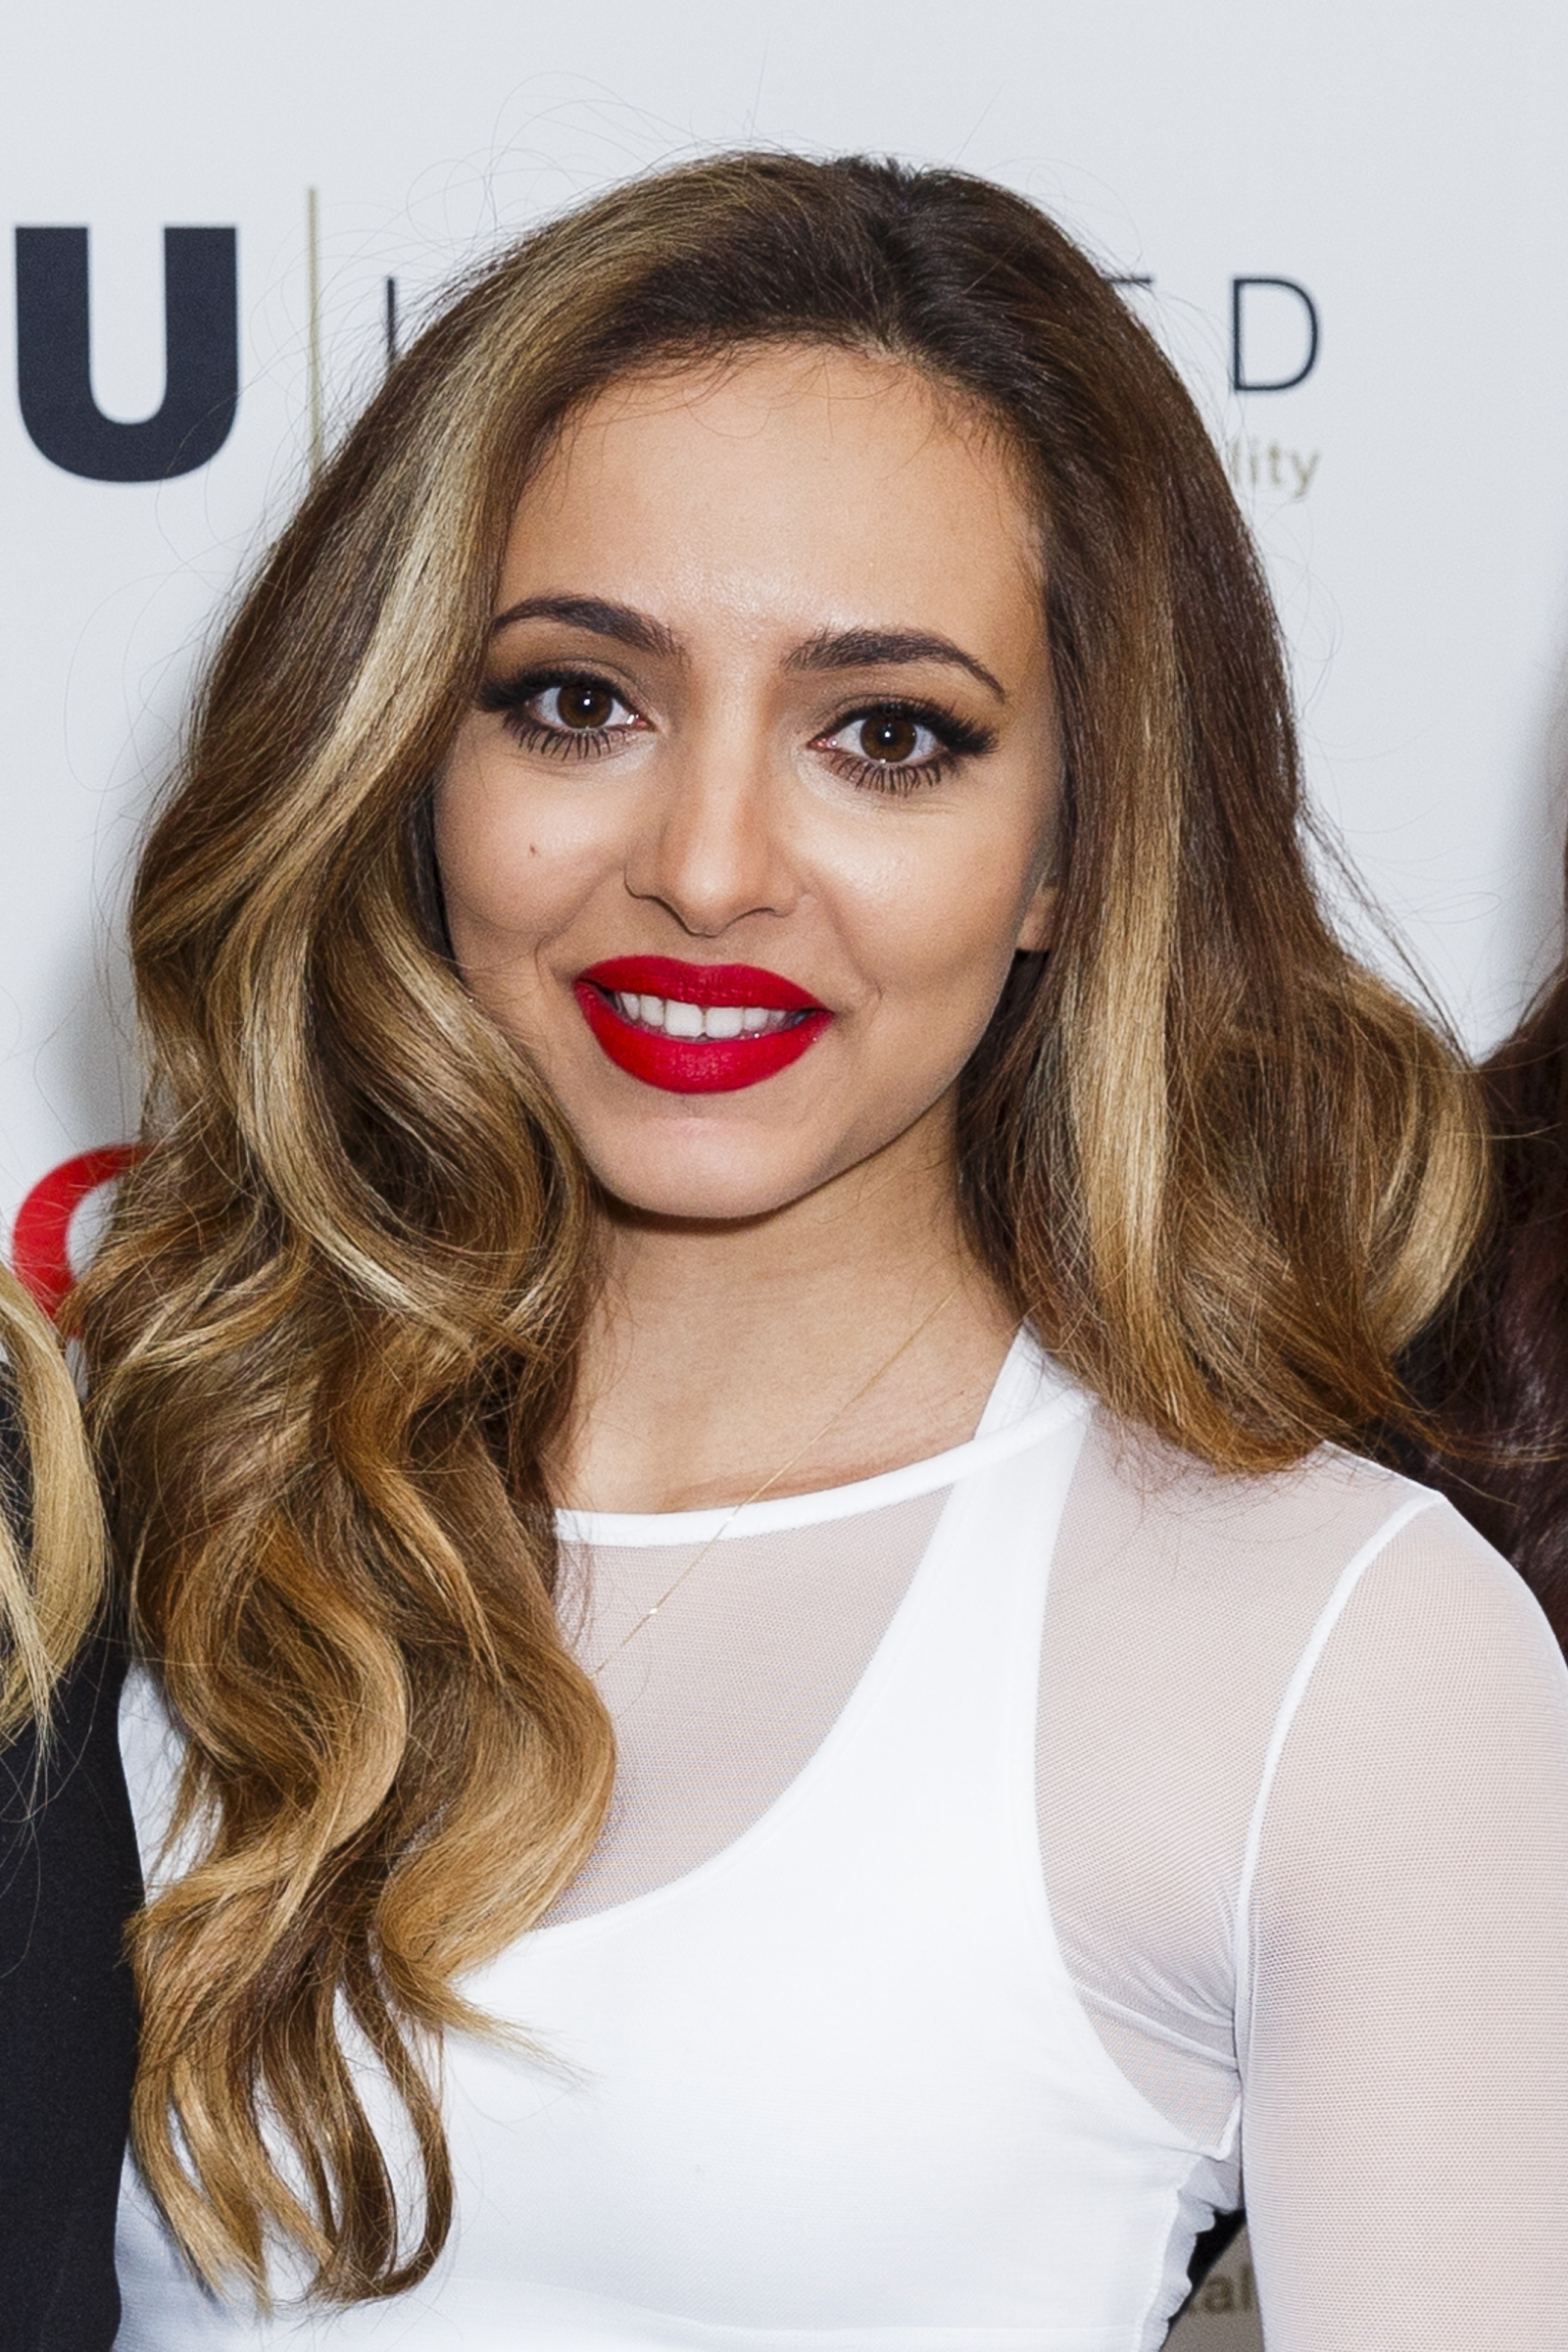 Pictures Jade Thirlwall nude photos 2019